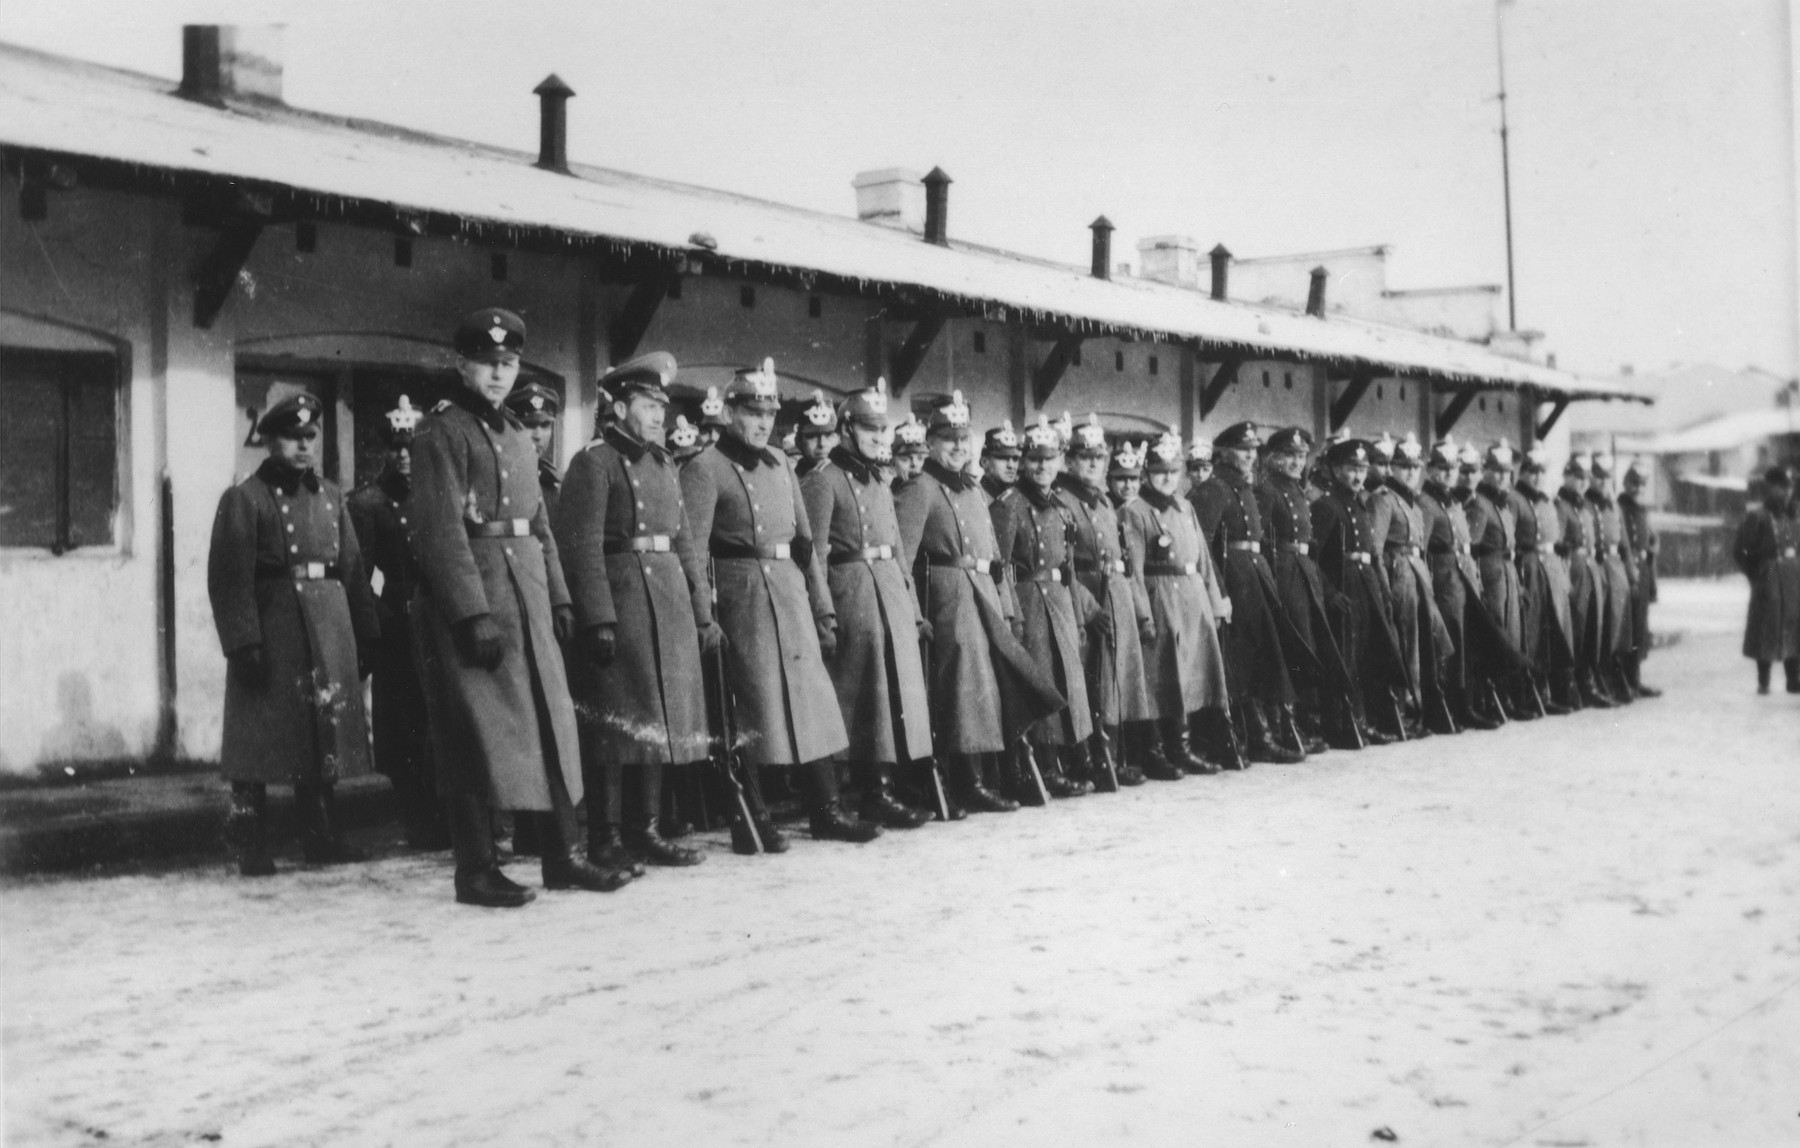 German police stand in formation in Zawiercie.   New Market Place in front of the trade pavillion.  Mainly butcher shops and other shops owned by Jews before the war.